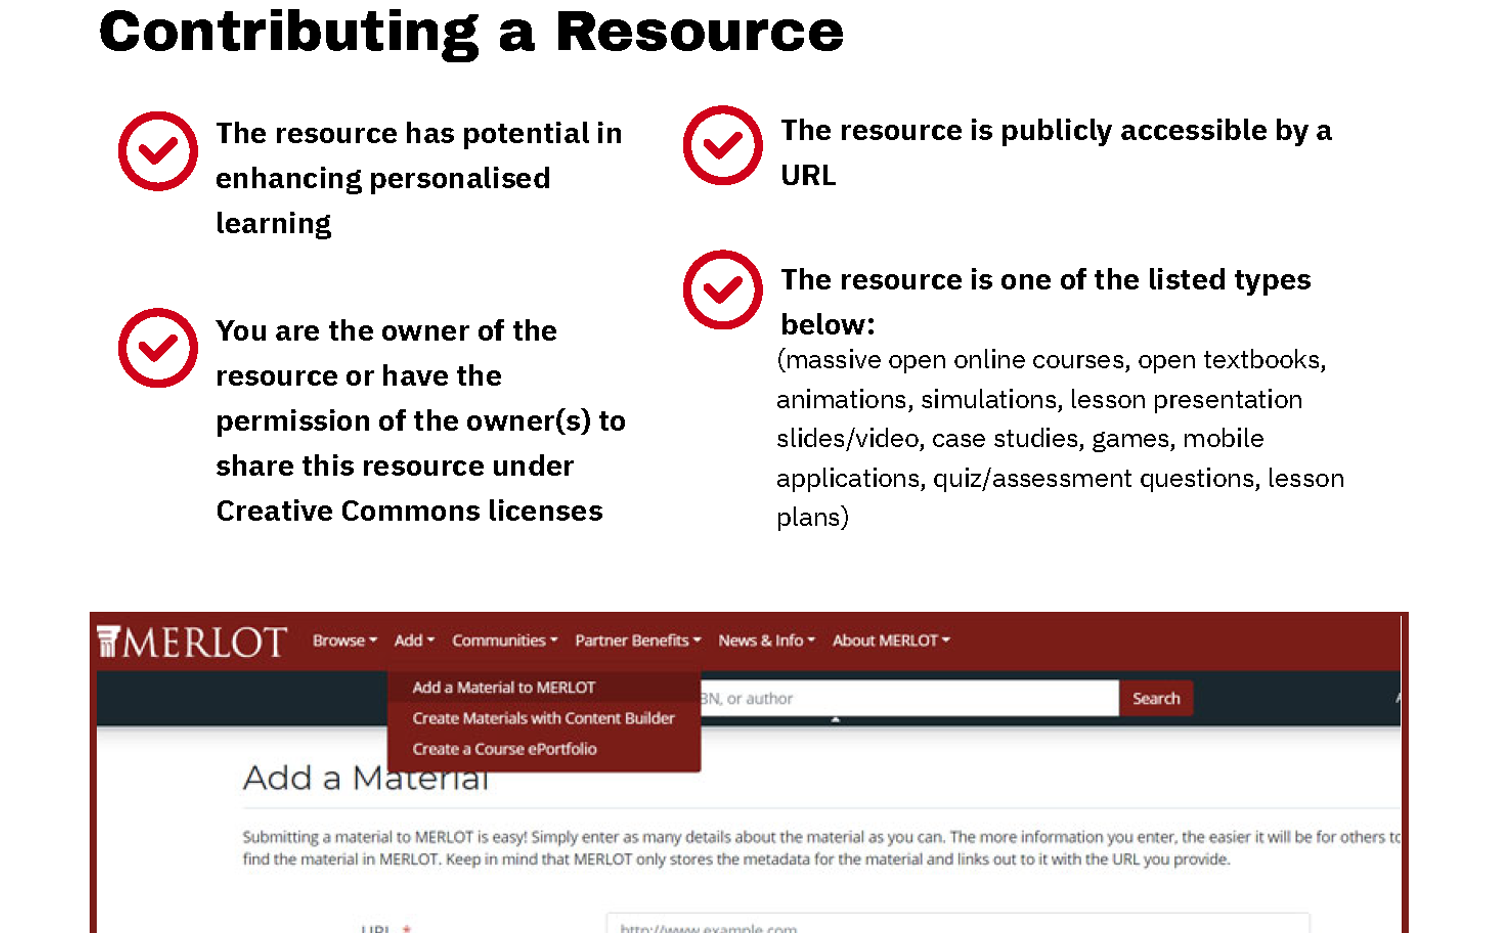 Contributing a Resource